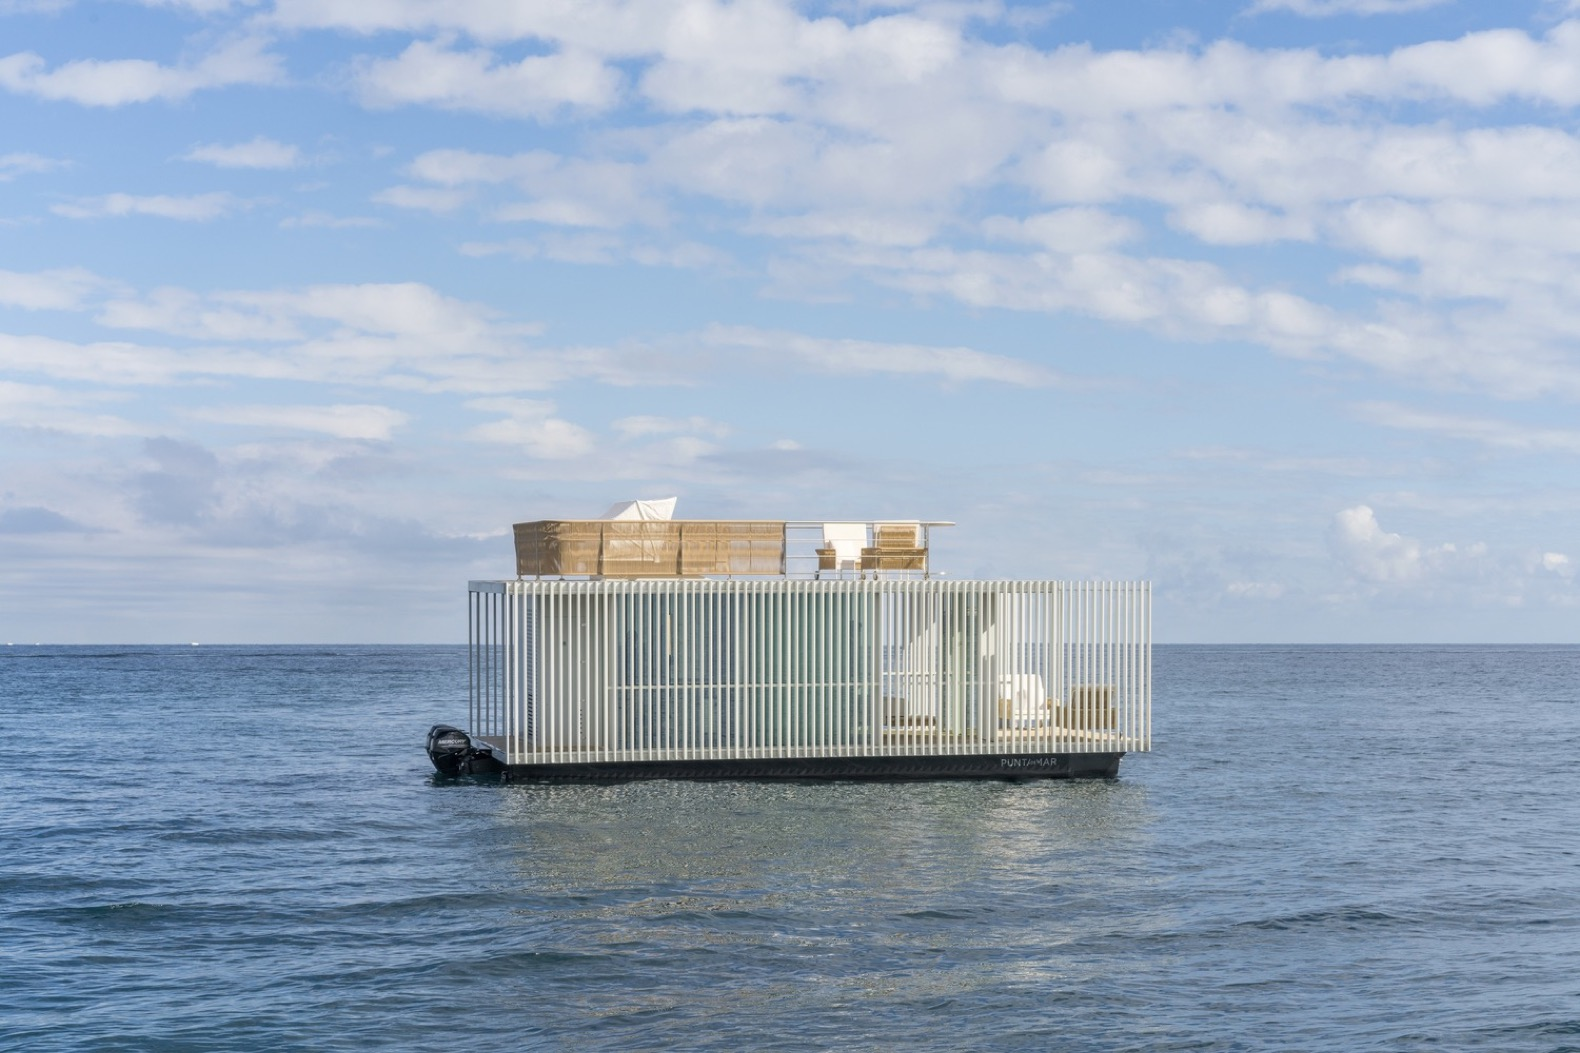 Solar-powered floating hotel room is designed to pop up anywhere on water